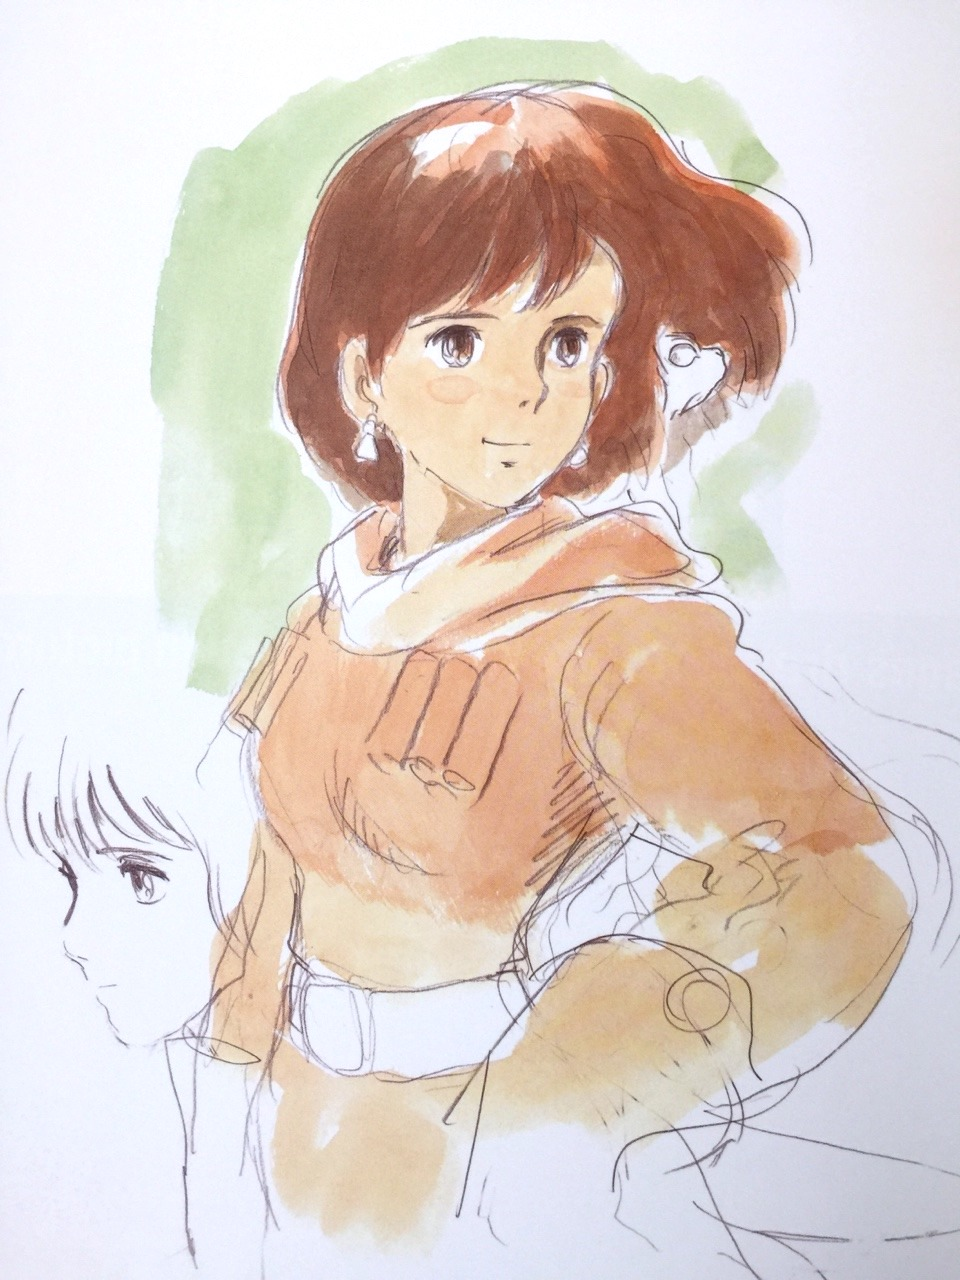 Production-Sketches-and-Concept-Work-for-Nausica-of-the-Valley-of-the-Wind-Hayao-Miyazaki-nausicaa-of-the-valley-of-the-wind-40590587-960-1280 (1).jpg